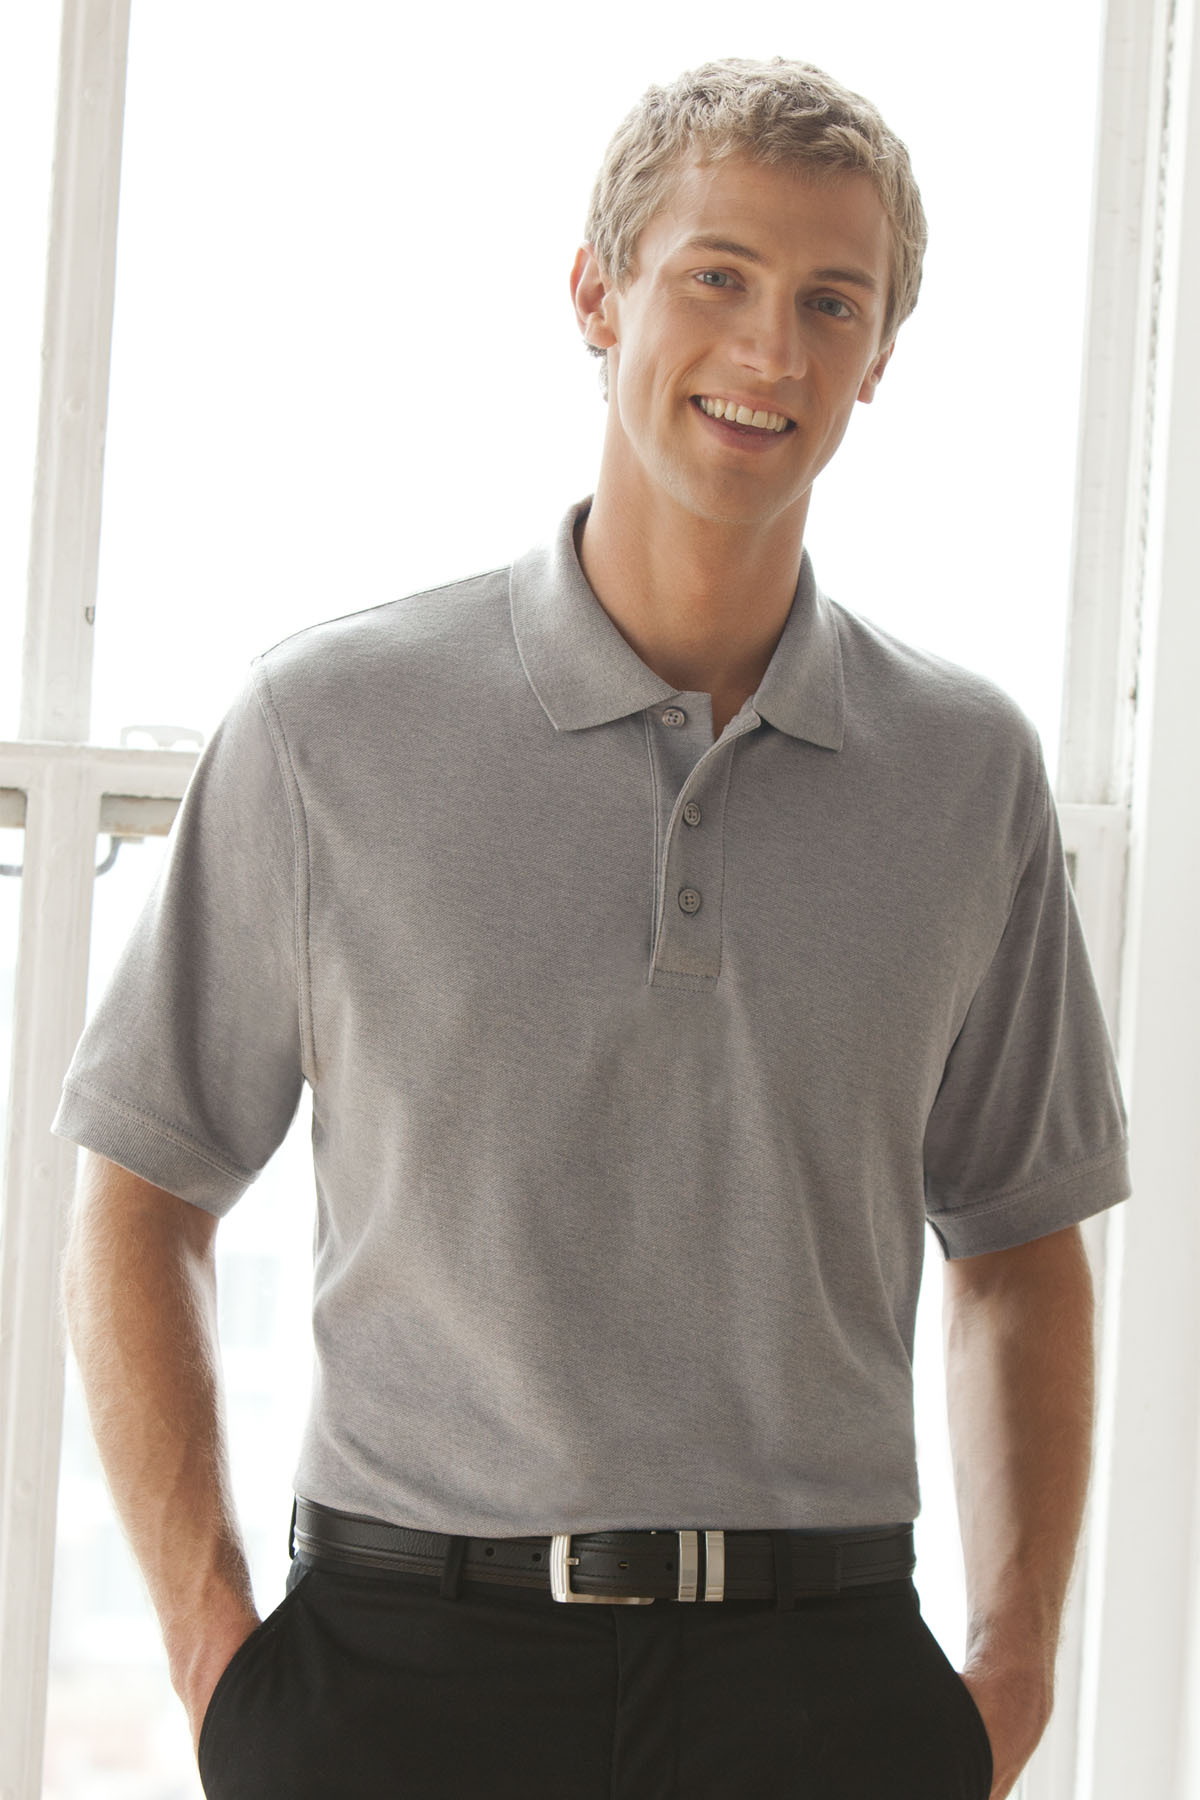 Vantage 2100 - Soft-Blend Double-Tuck Pique Polo